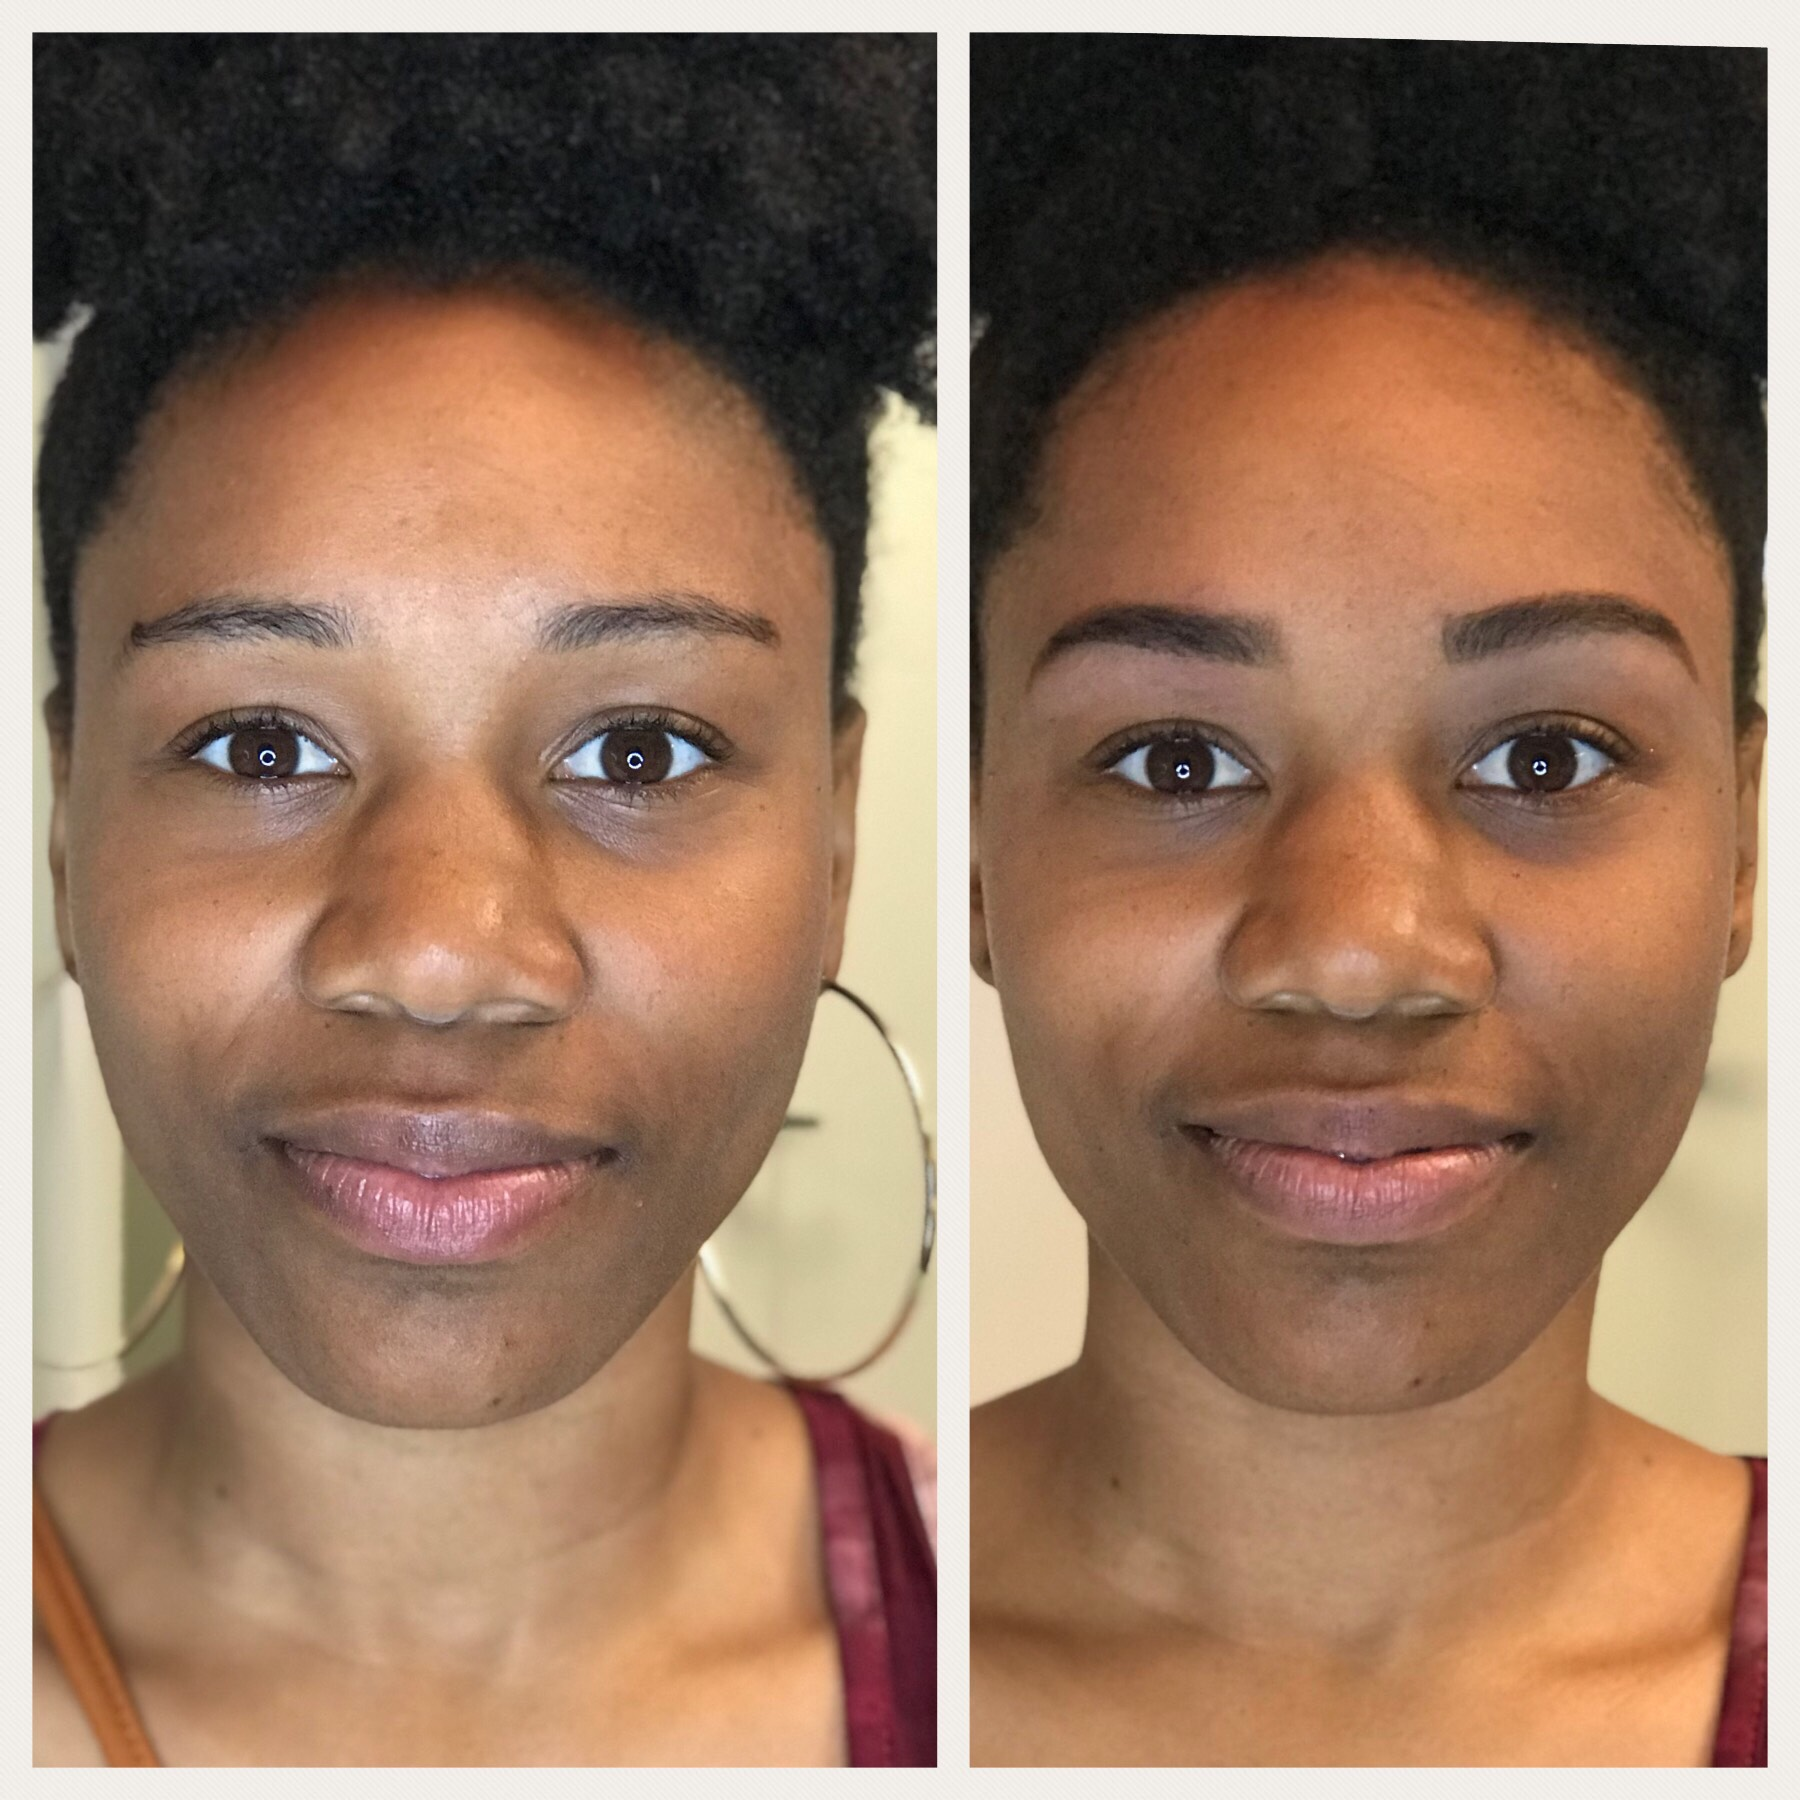 HENNA BROW SHAPING - BEFORE & AFTER